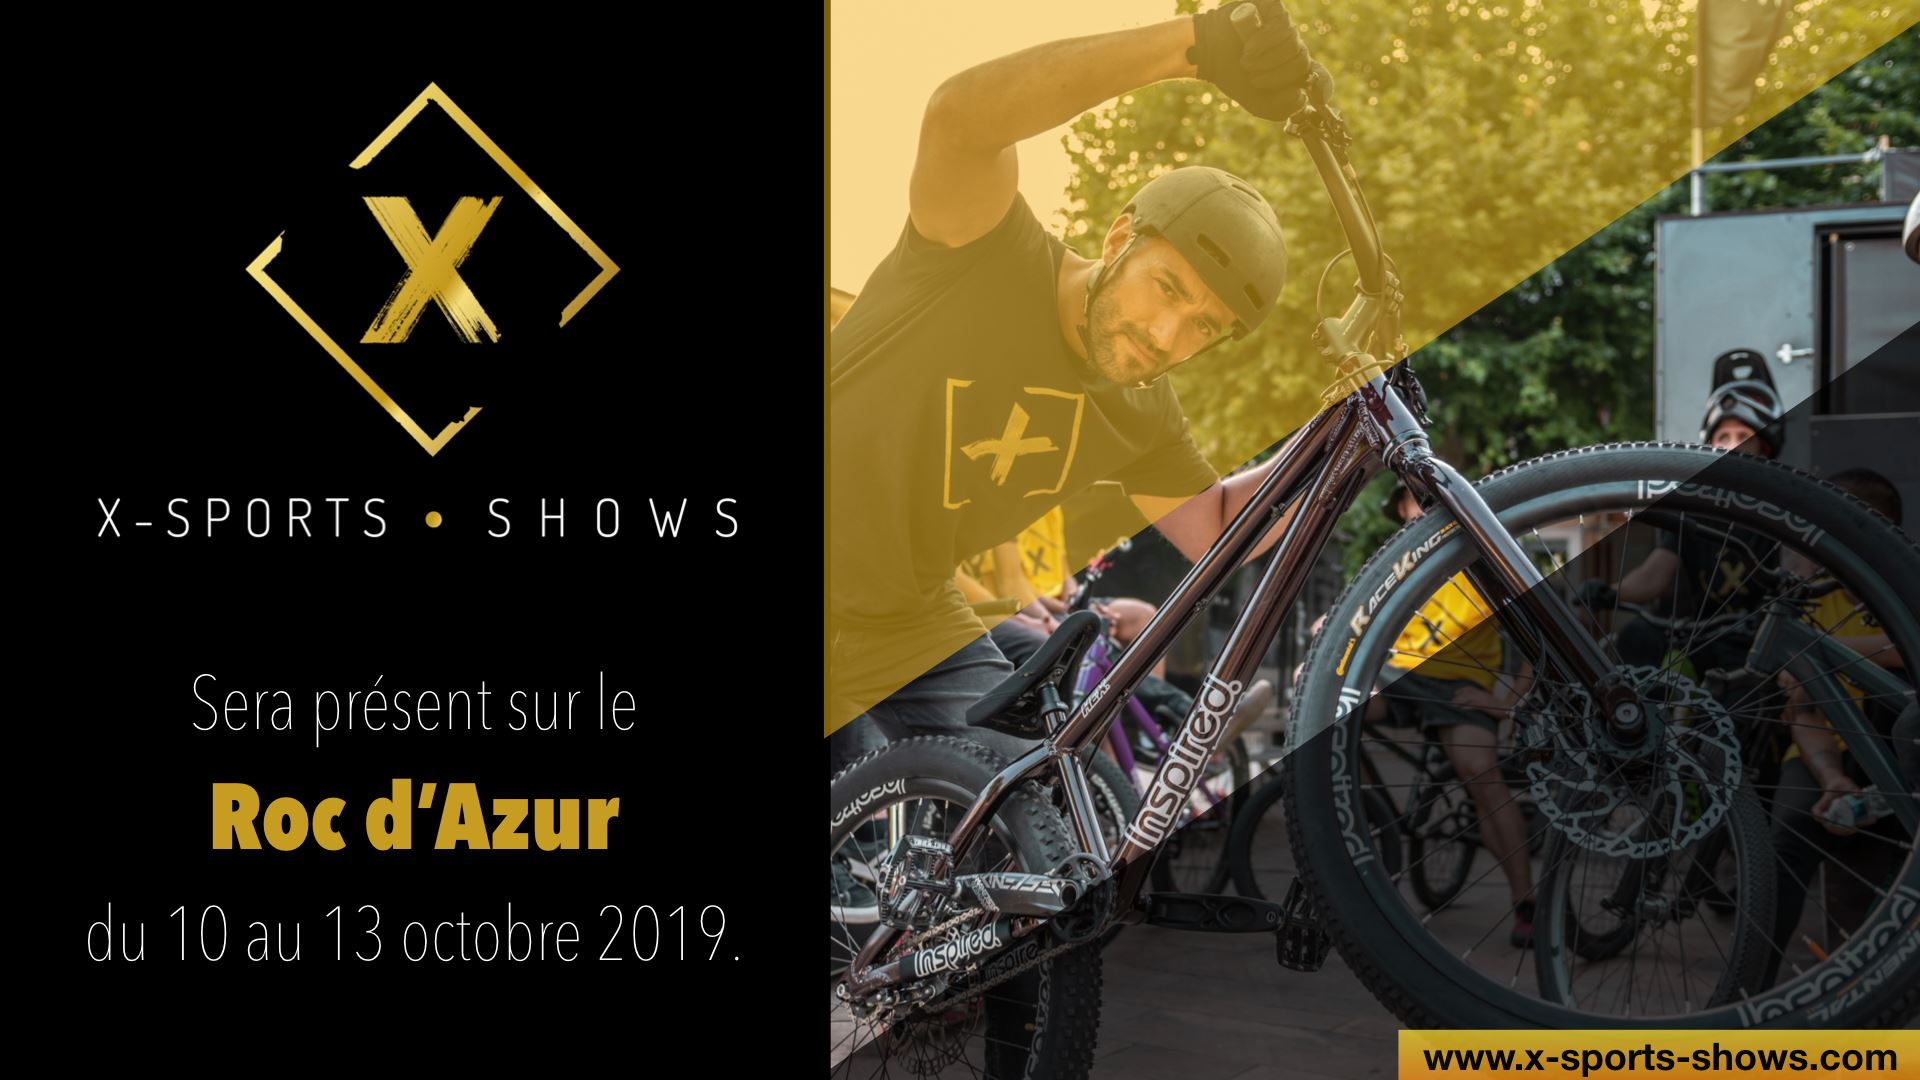 X-sports shows sur le Roc d'Azur 2019